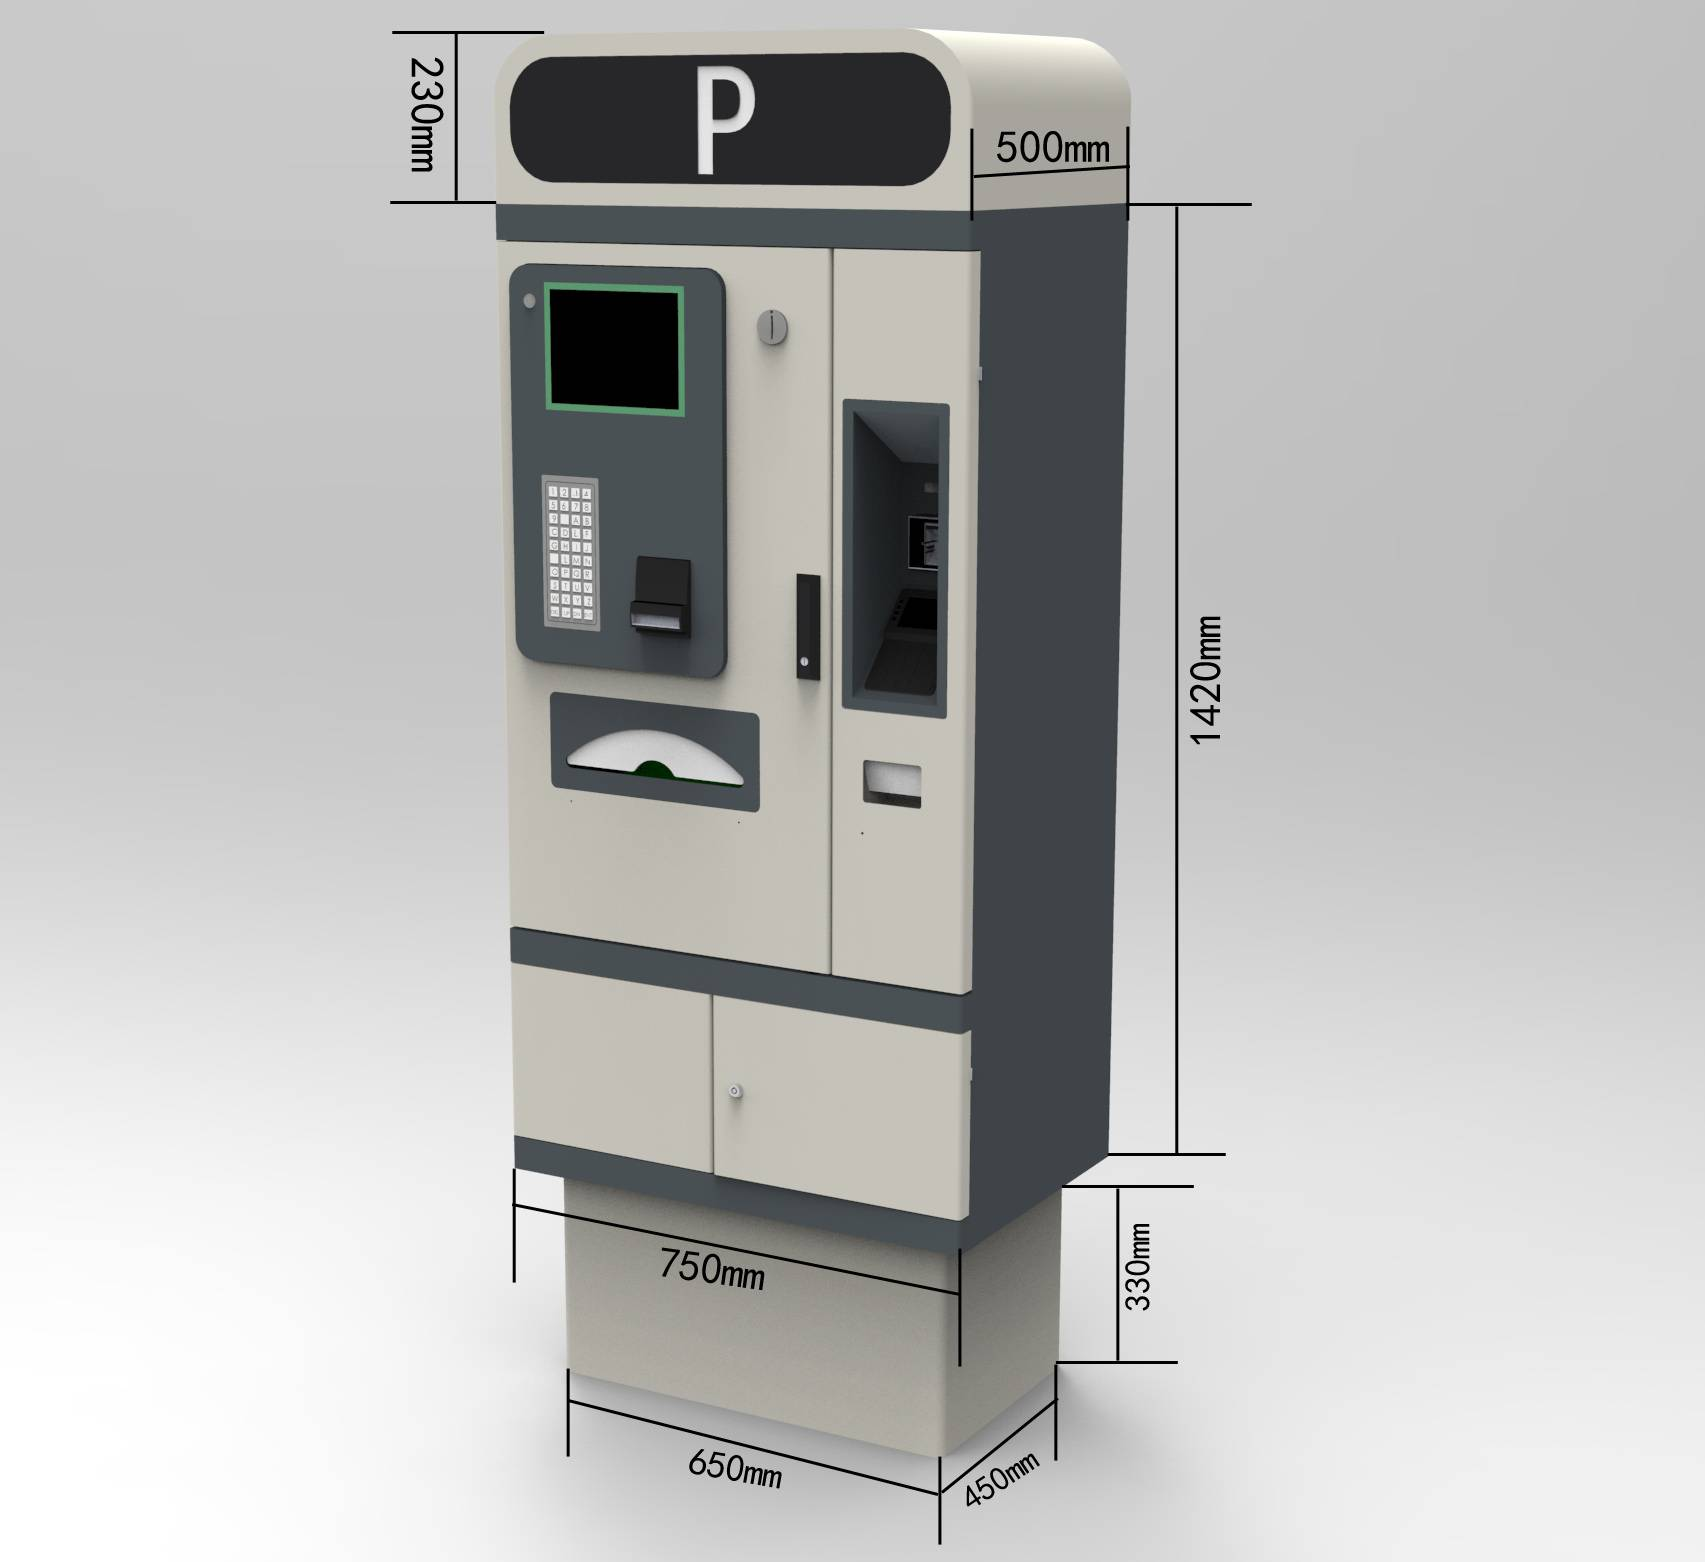 pay on foot parking payment kiosk parking management